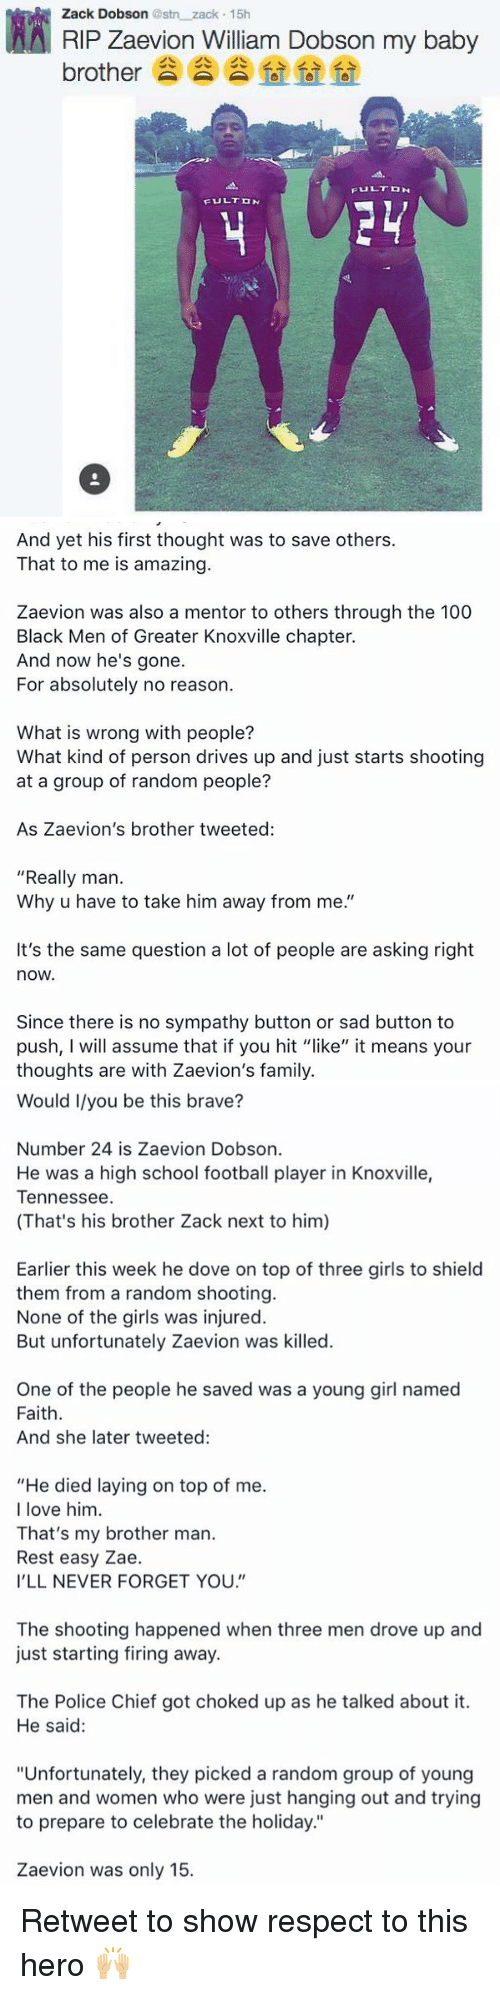 "choked up: AA Zack Dobson estn zack 15h  Dobson my baby  RIP zaevion William brother  FULT DN  FULT DN   And yet his first thought was to save others.  That to me is amazing.  Zaevion was also a mentor to others through the 100  Black Men of Greater Knoxville chapter.  And now he's gone.  For absolutely no reason.  What is wrong with people?  What kind of person drives up and just starts shooting  at a group of random people?  As Zaevion's brother tweeted:  ""Really man.  Why u have to take him away from me.""  It's the same question a lot of people are asking right  nOW.  Since there is no sympathy button or sad button to  push, I will assume that if you hit ""like"" it means your  thoughts are with Zaevion's family.   Would I/you be this brave?  Number 24 is Zaevion Dobson.  He was a high school football player in Knoxville,  Tennessee  (That's his brother Zack next to him)  Earlier this week he dove on top of three girls to shield  them from a random shooting.  None of the girls was injured.  But unfortunately Zaevion was killed.  One of the people he saved was a young girl named  Faith.  And she later tweeted:  ""He died laying on top of me.  I love him  That's my brother man.  Rest easy Zae.  I'LL NEVER FORGET YOU.  The shooting happened when three men drove up and  just starting firing away.  The Police Chief got choked up as he talked about it.  He said:  ""Unfortunately, they picked a random group of young  men and women who were just hanging out and trying  to prepare to celebrate the holiday.""  Zaevion was only 15. Retweet to show respect to this hero 🙌🏼"